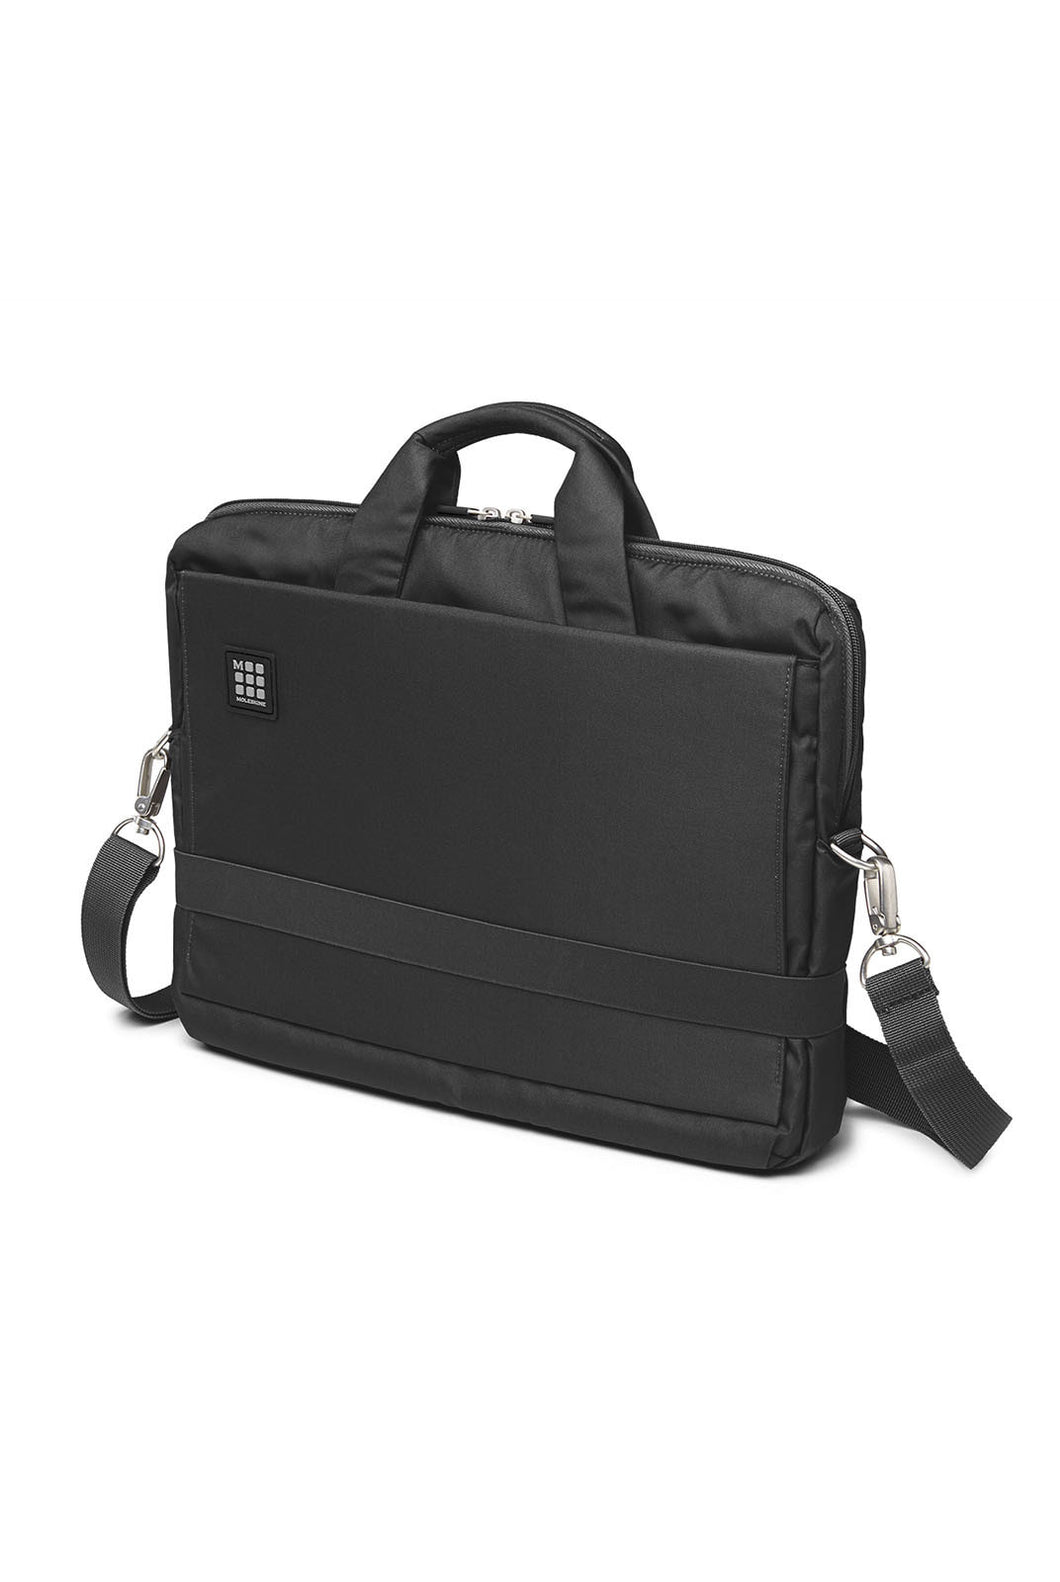 Moleskine - ID Device Bag - Horizontal - 15